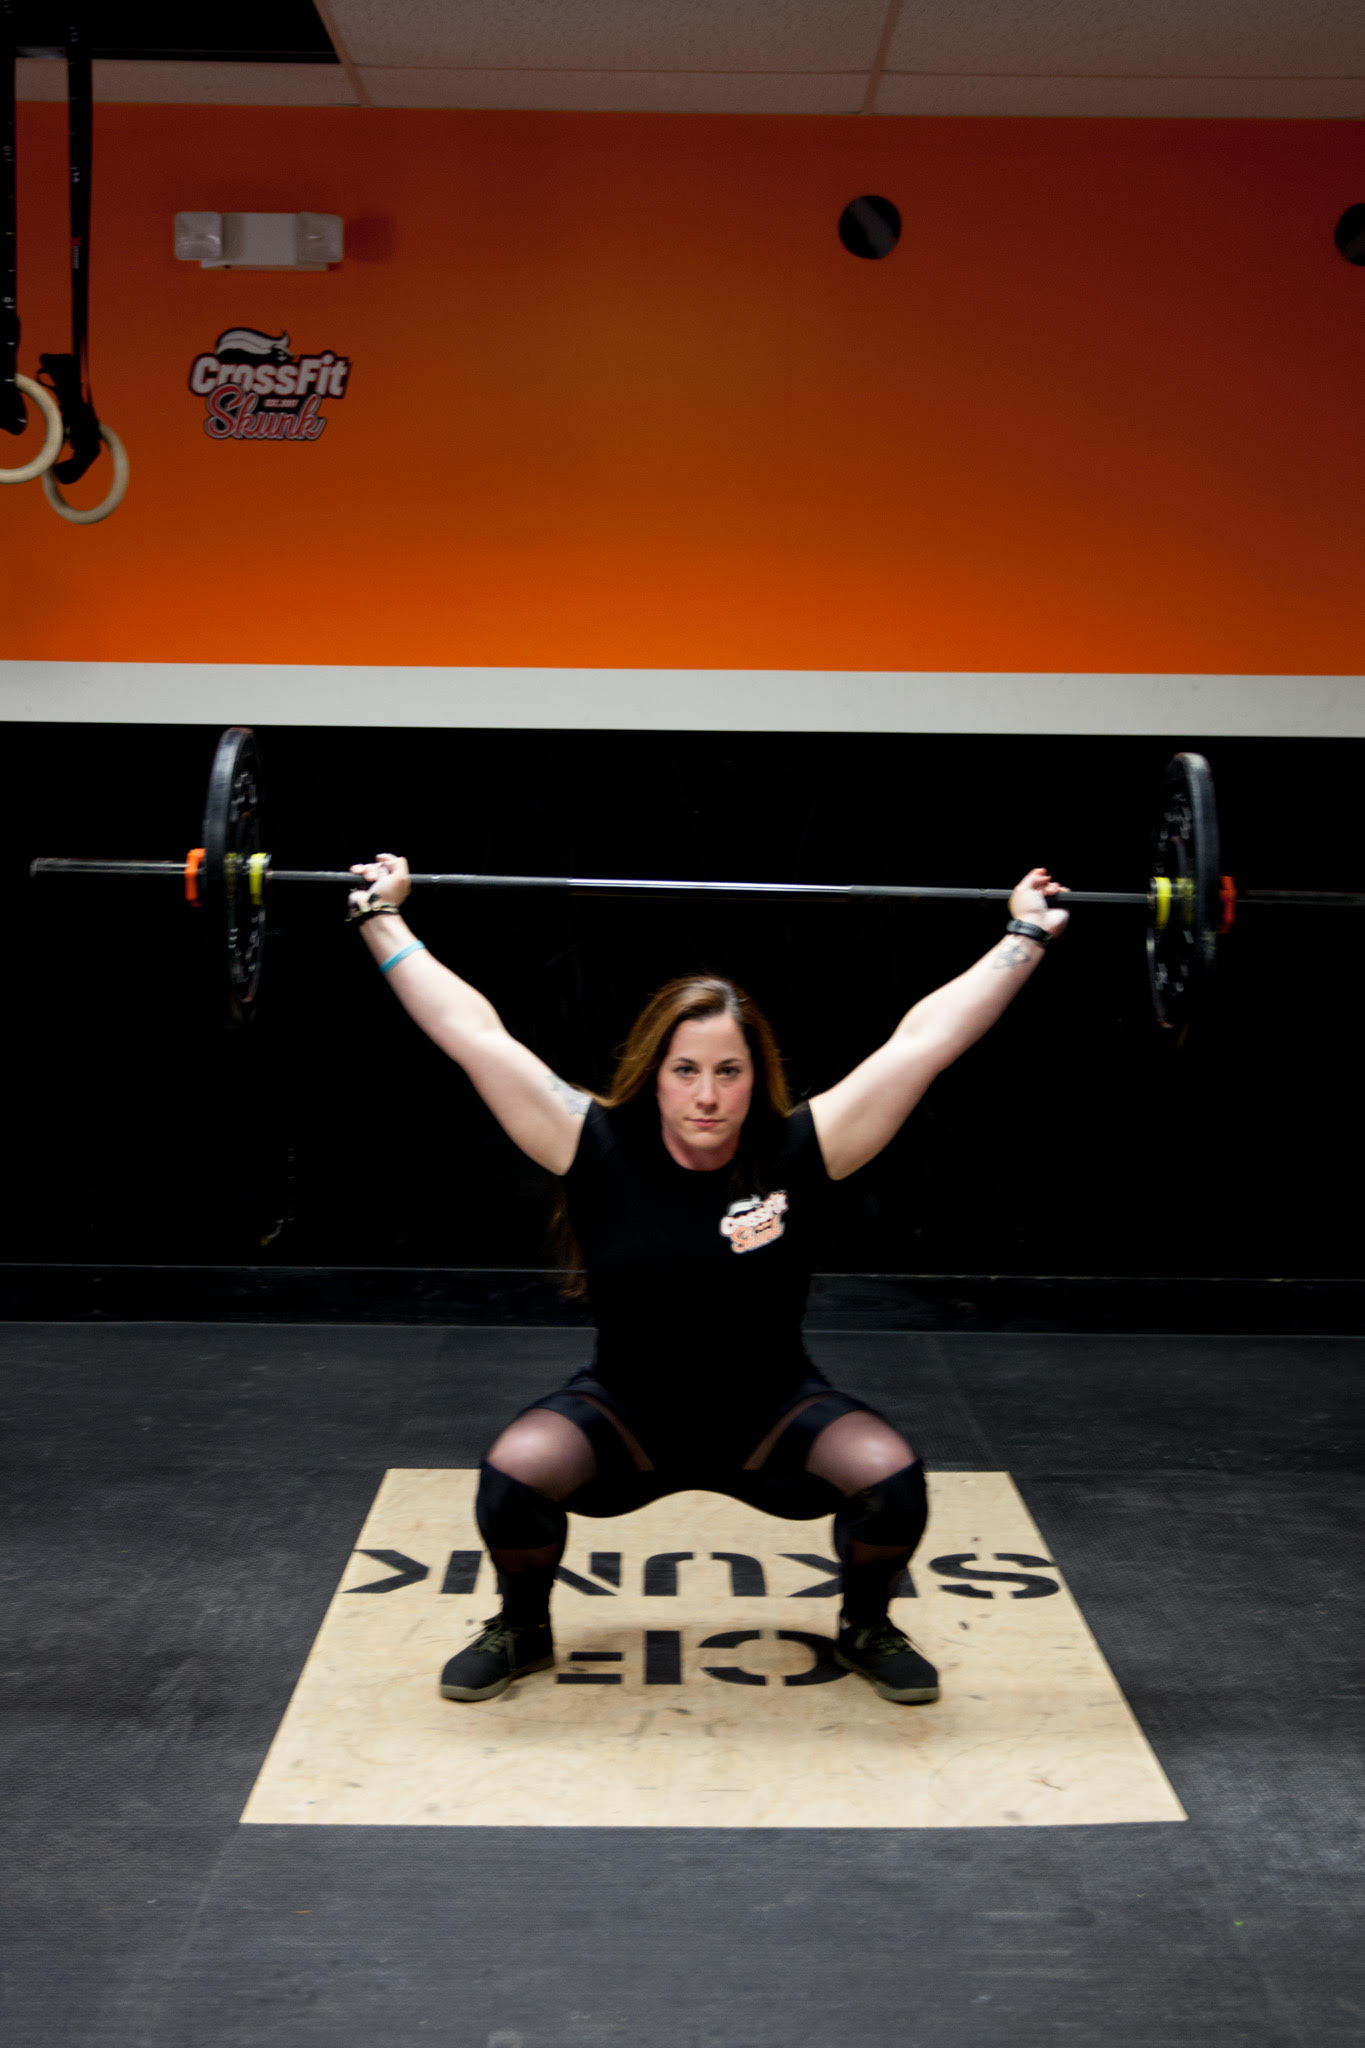 Kelly DeLear - Head CoachBORN AND RAISED IN PT. PLEASANT, NJ, KELLY HAS BEEN A FITNESS ENTHUSIAST HER WHOLE LIFE; PARTICIPATING IN BOOTCAMPS, 5KS, MARATHONS, TRIATHLONS, AND ASSORTED COMPETITIVE OBSTACLE RACES. IN 2017, SHE COMPLETED A SPARTAN DOUBLE TRIFECTA RACING IN COMPETITIVE HEATS. KELLY HAS COMPETED IN SOME CROSSFIT COMPETITIONS AND PLANS TO DO MORE IN THE FUTURE.IN 2006, KELLY RECEIVED A BACHELOR'S DEGREE IN ART HISTORY FROM MONMOUTH UNIVERSITY AND CURRENTLY WORKS AS A DENTAL ASSISTANT IN VERNON, NJ. SHE BECAME A CROSSFIT LEVEL 1 TRAINER IN 2018 AND ALSO COMPLETED THE CROSSFIT SPECIALTY COURSE IN WEIGHTLIFTING. GOING FORWARD, SHE PLANS TO PURSUE FURTHER CERTIFICATION.KELLY IS A MEMBER OF THE BROOKLYN BARBELL CLUB, A COMPETITIVE WEIGHTLIFTING TEAM, AND TRAINS IN OLYMPIC LIFTING. KELLY IS EXCITED TO BE JOINING THE CROSSFIT SKUNK TEAM AND IS ANXIOUS TO ASSIST MEMBERS IN ACHIEVING THEIR FITNESS GOALS.